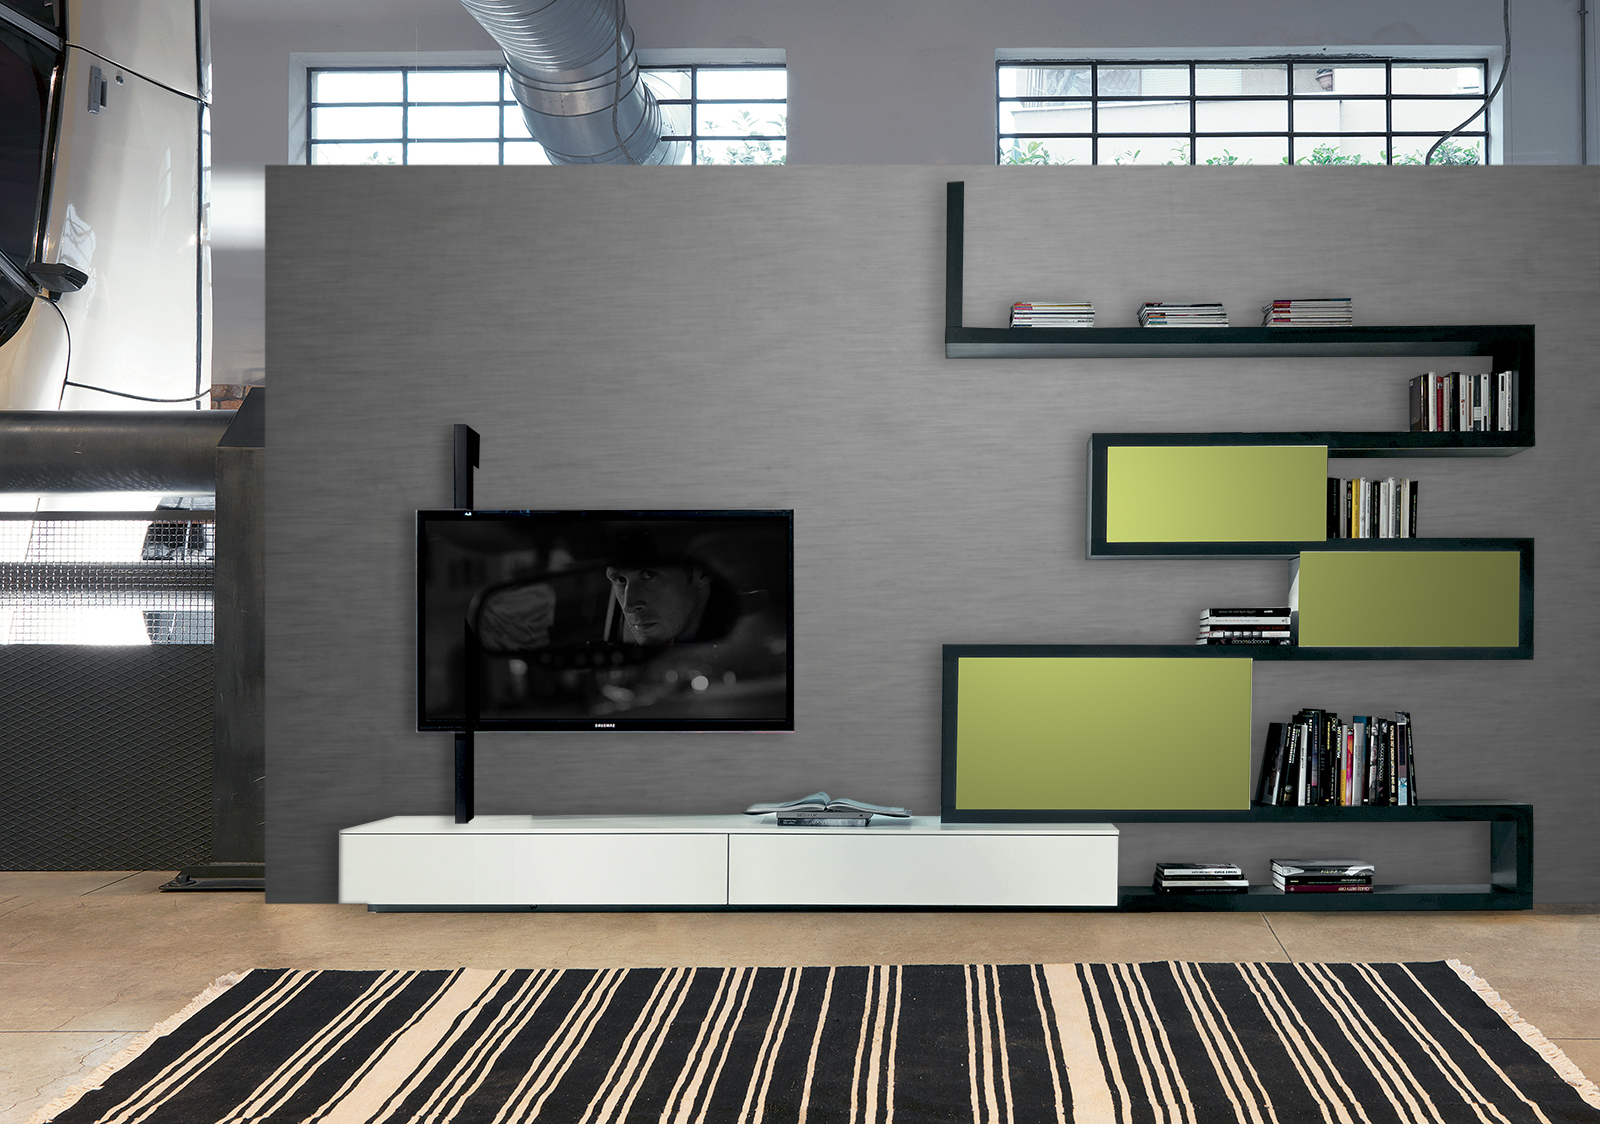 Fimar - Mobili & Idee: Side System 9 con porta tv orientabile Flag